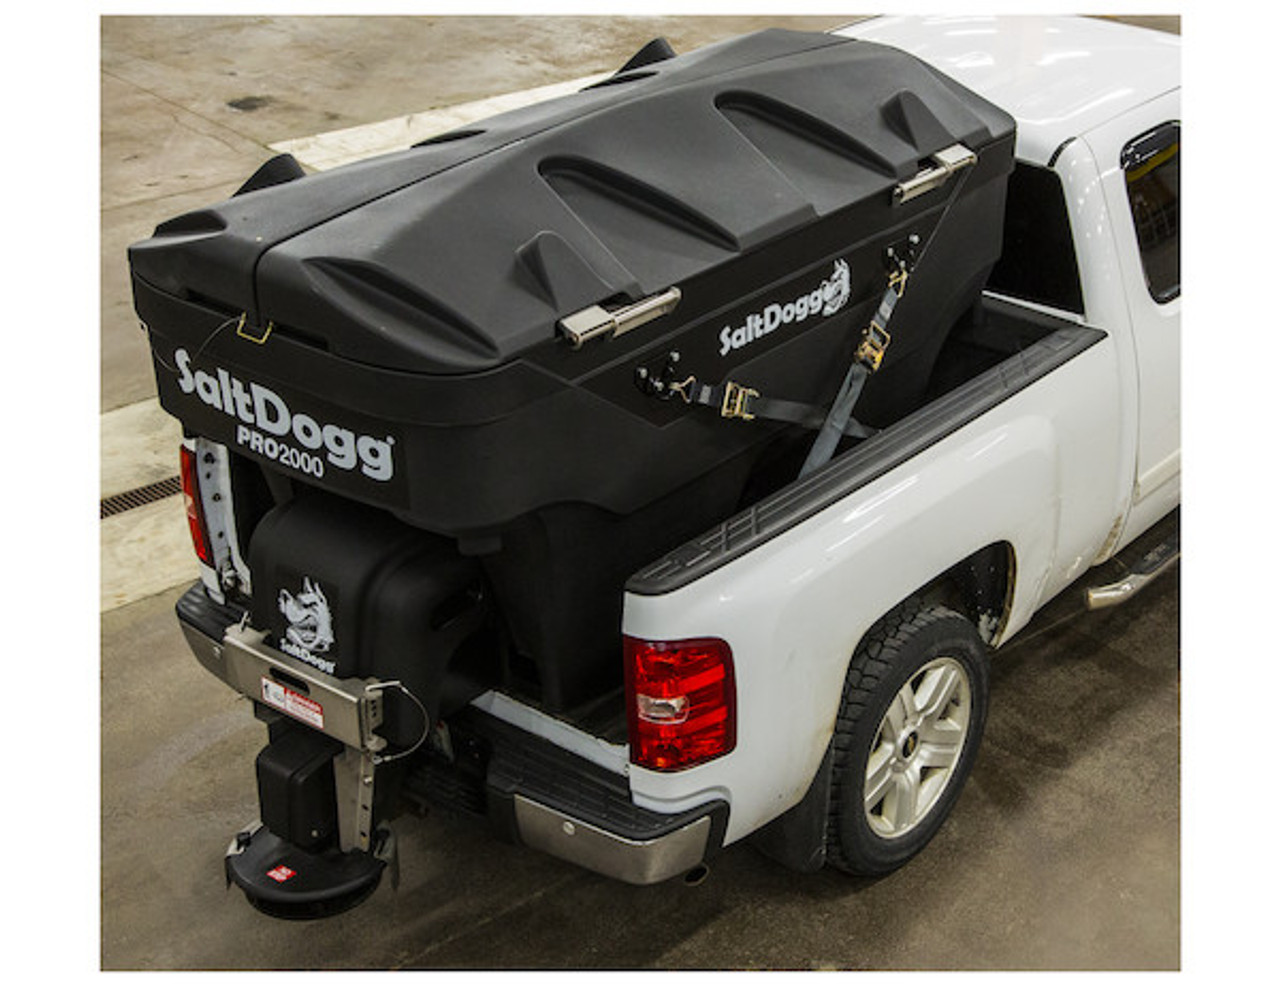 PRO2000CH BUYERS SALTDOGG ELECTRIC POLY HOPPER SPREADER WITH CONVEYOR CHAIN  SHOWN WITH SALTDOGG EZ LID (LID SOLD SEPARATELY) Picture # 6